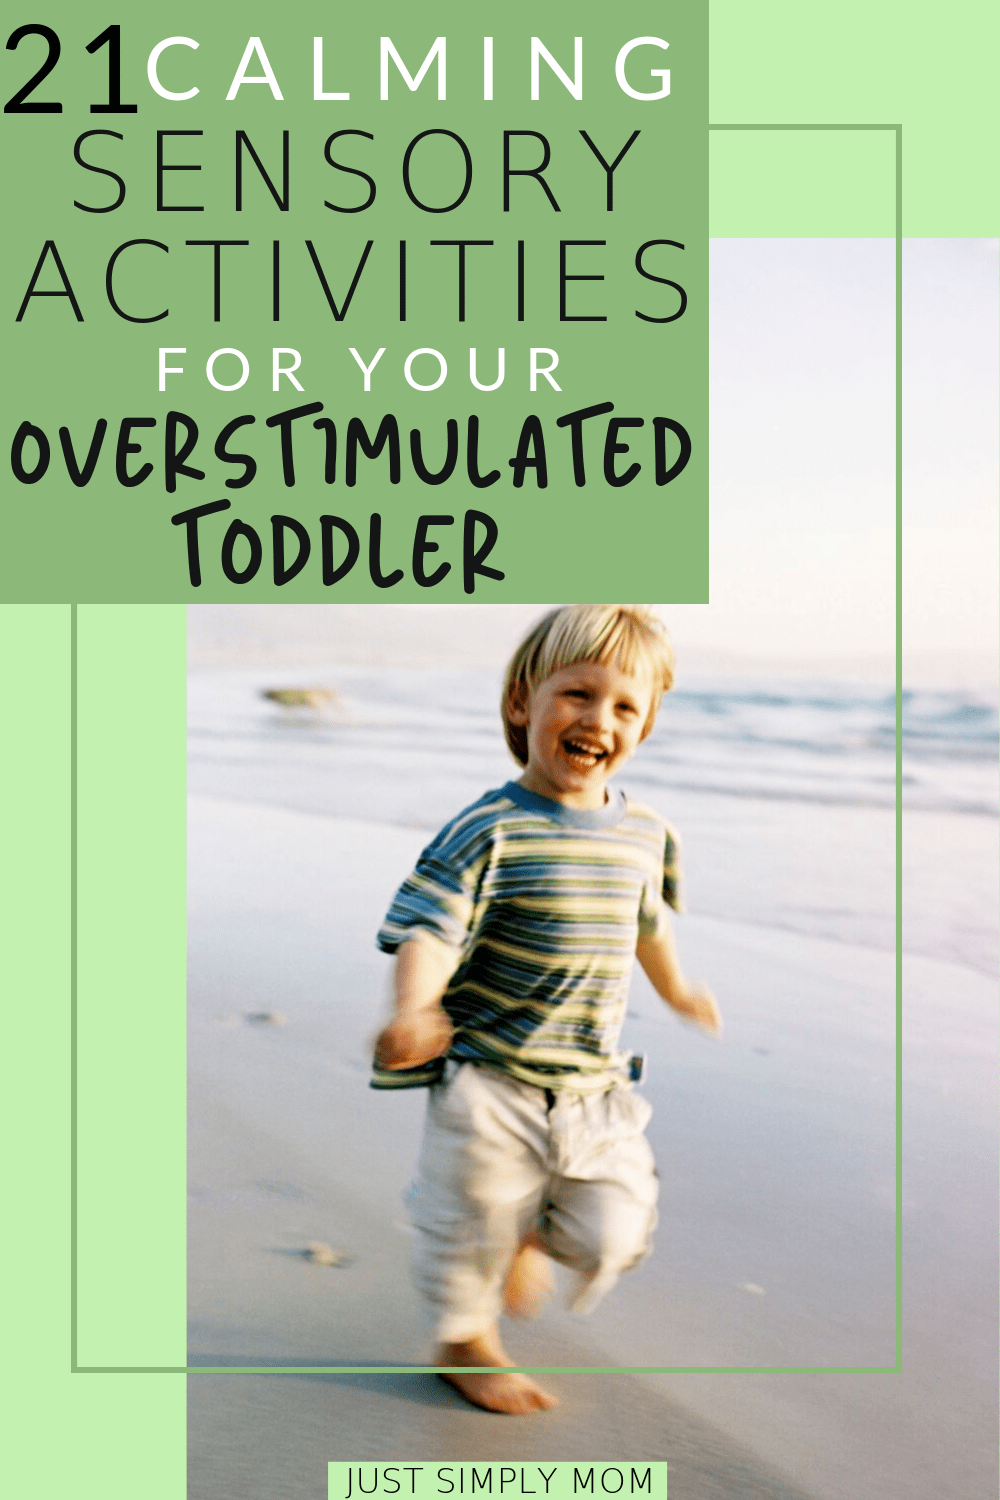 24 Calming Sensory Activities and Strategies for Your Overstimulated Toddler